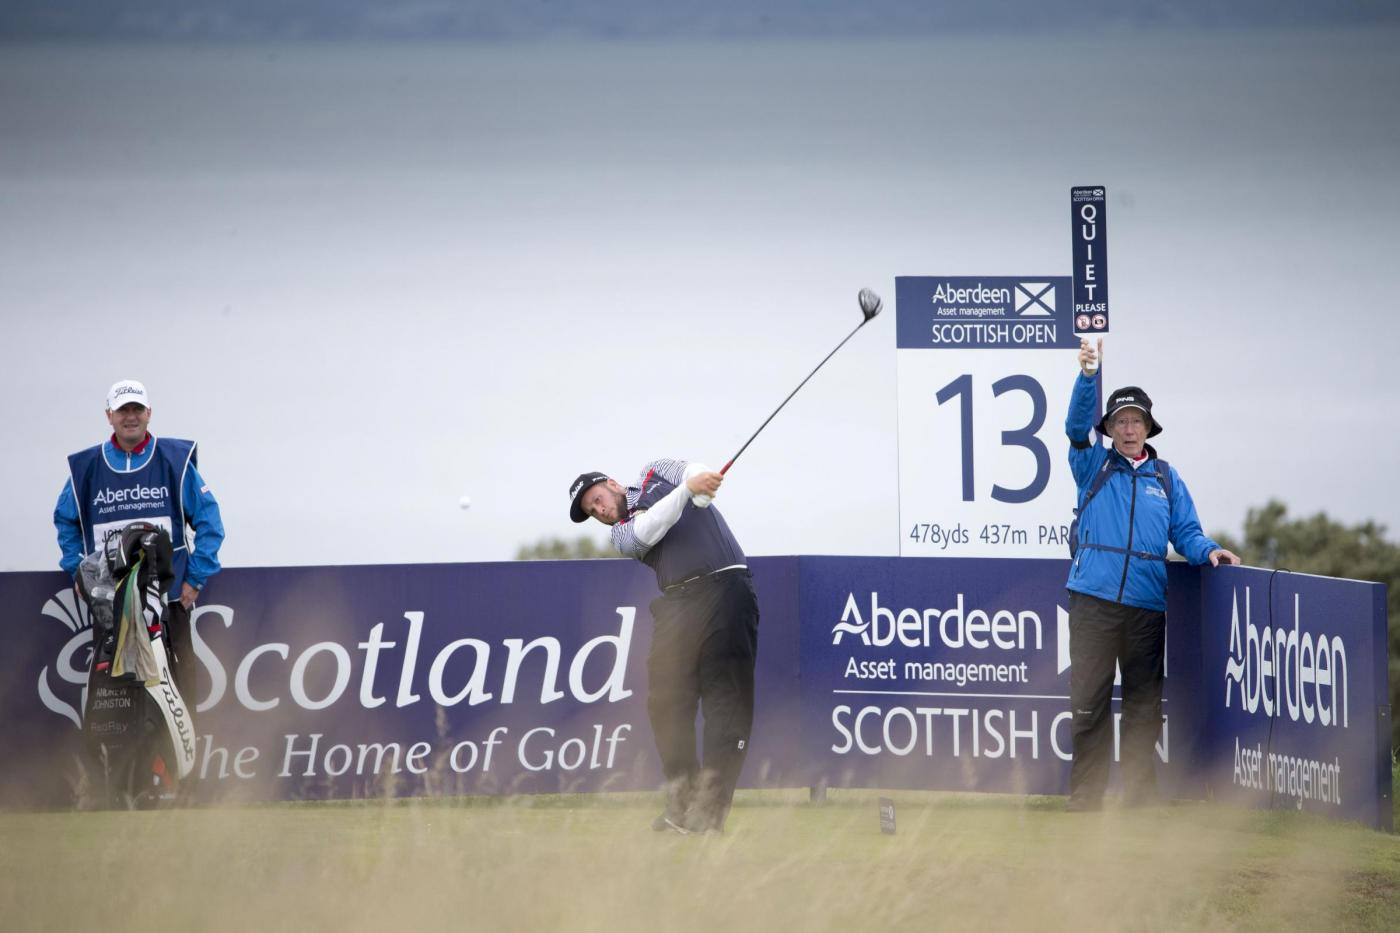 England's Andrew Johnston tees off at the 13th hole during day two of the Scottish Open at Gullane Golf Club, East Lothian. PRESS ASSOCIATION Photo. Picture date: Friday July 10, 2015. See PA story GOLF Gullane. Photo credit should read: Kenny Smith/PA Wire. RESTRICTIONS: Editorial use only. No commercial use. No false commercial association. No video emulation. No manipulation of images.